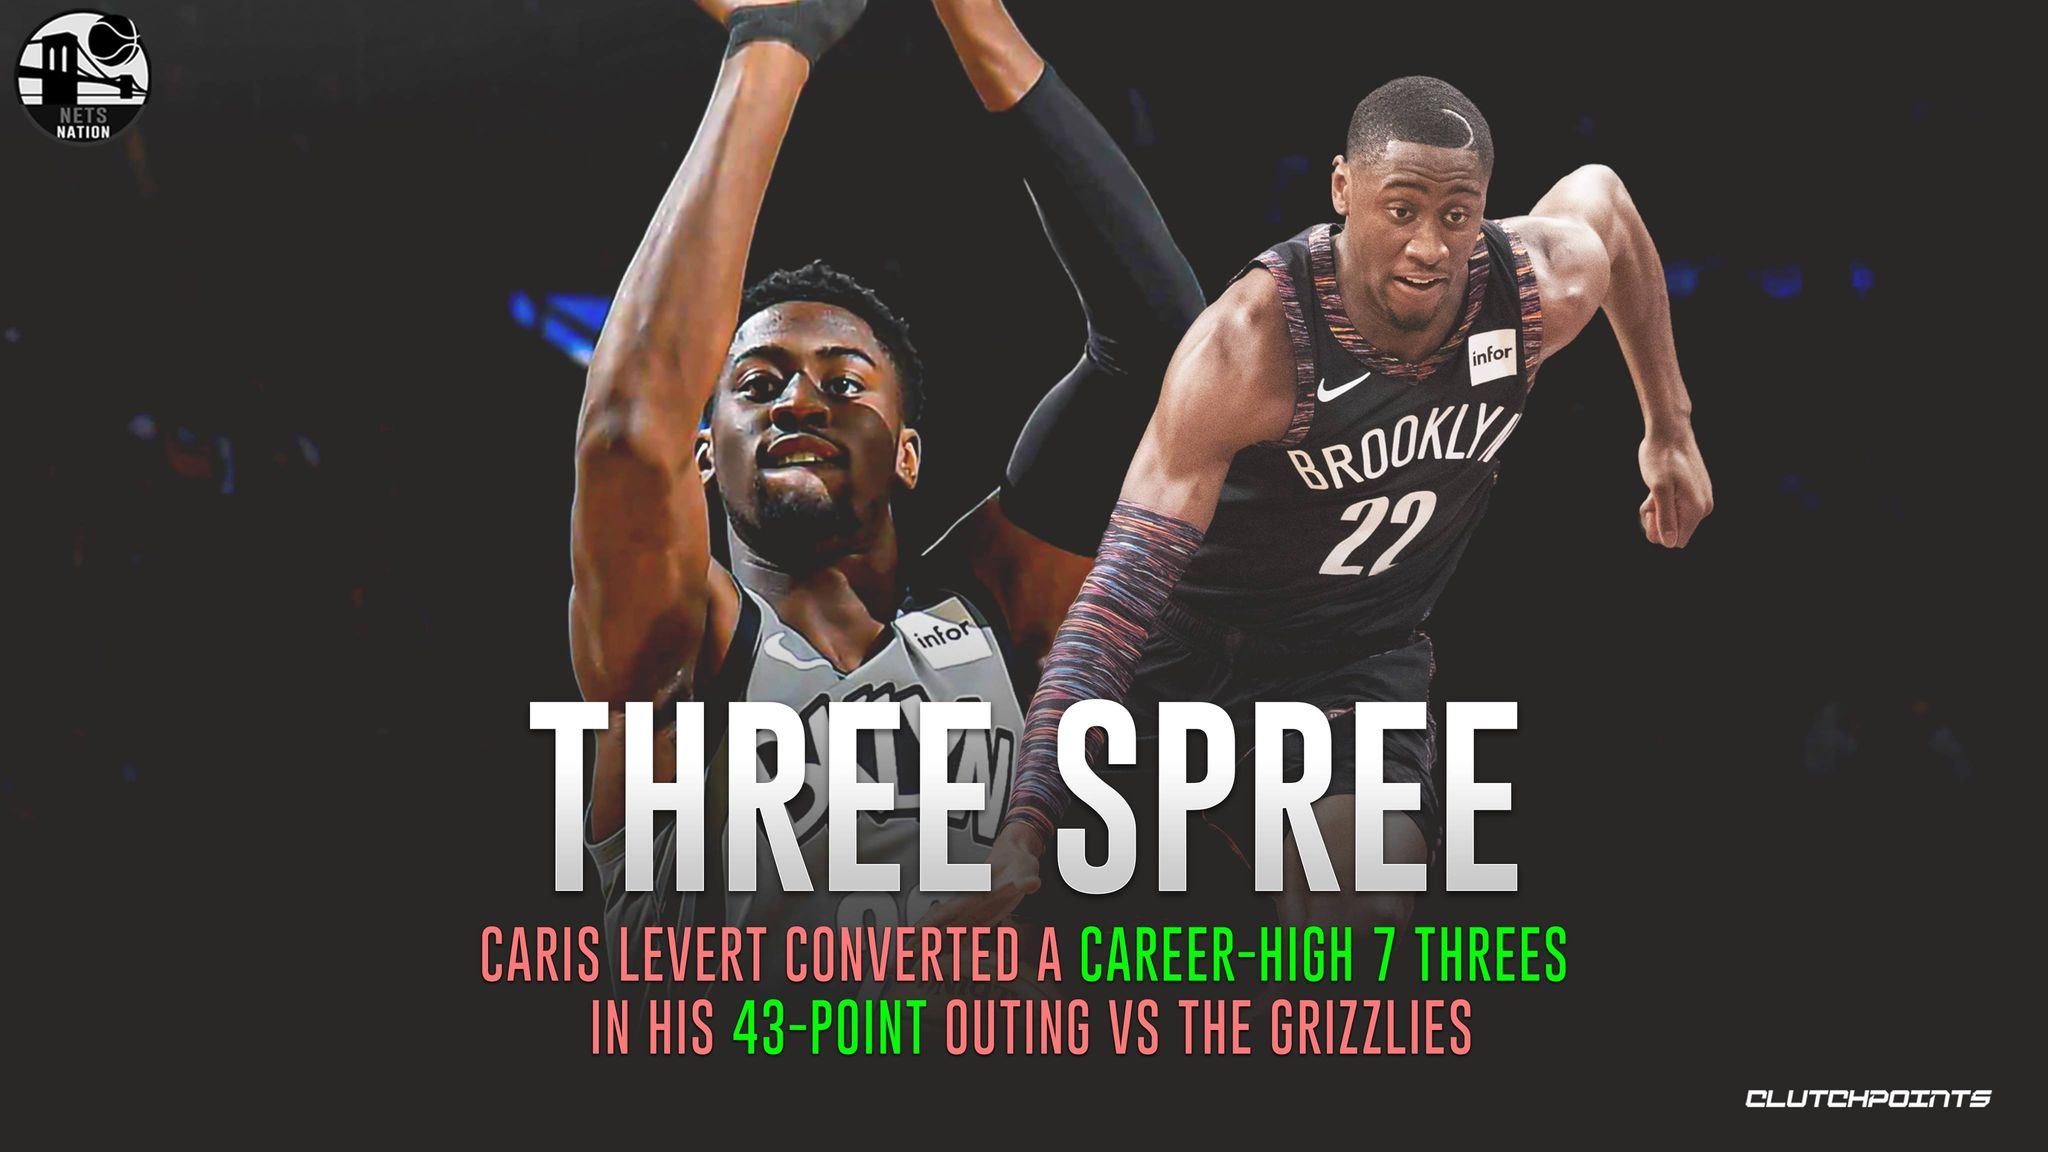 Nets Nation On Twitter Despite The Loss To Those Grizzlies Caris Levert Showed His Elite Shooting Touch